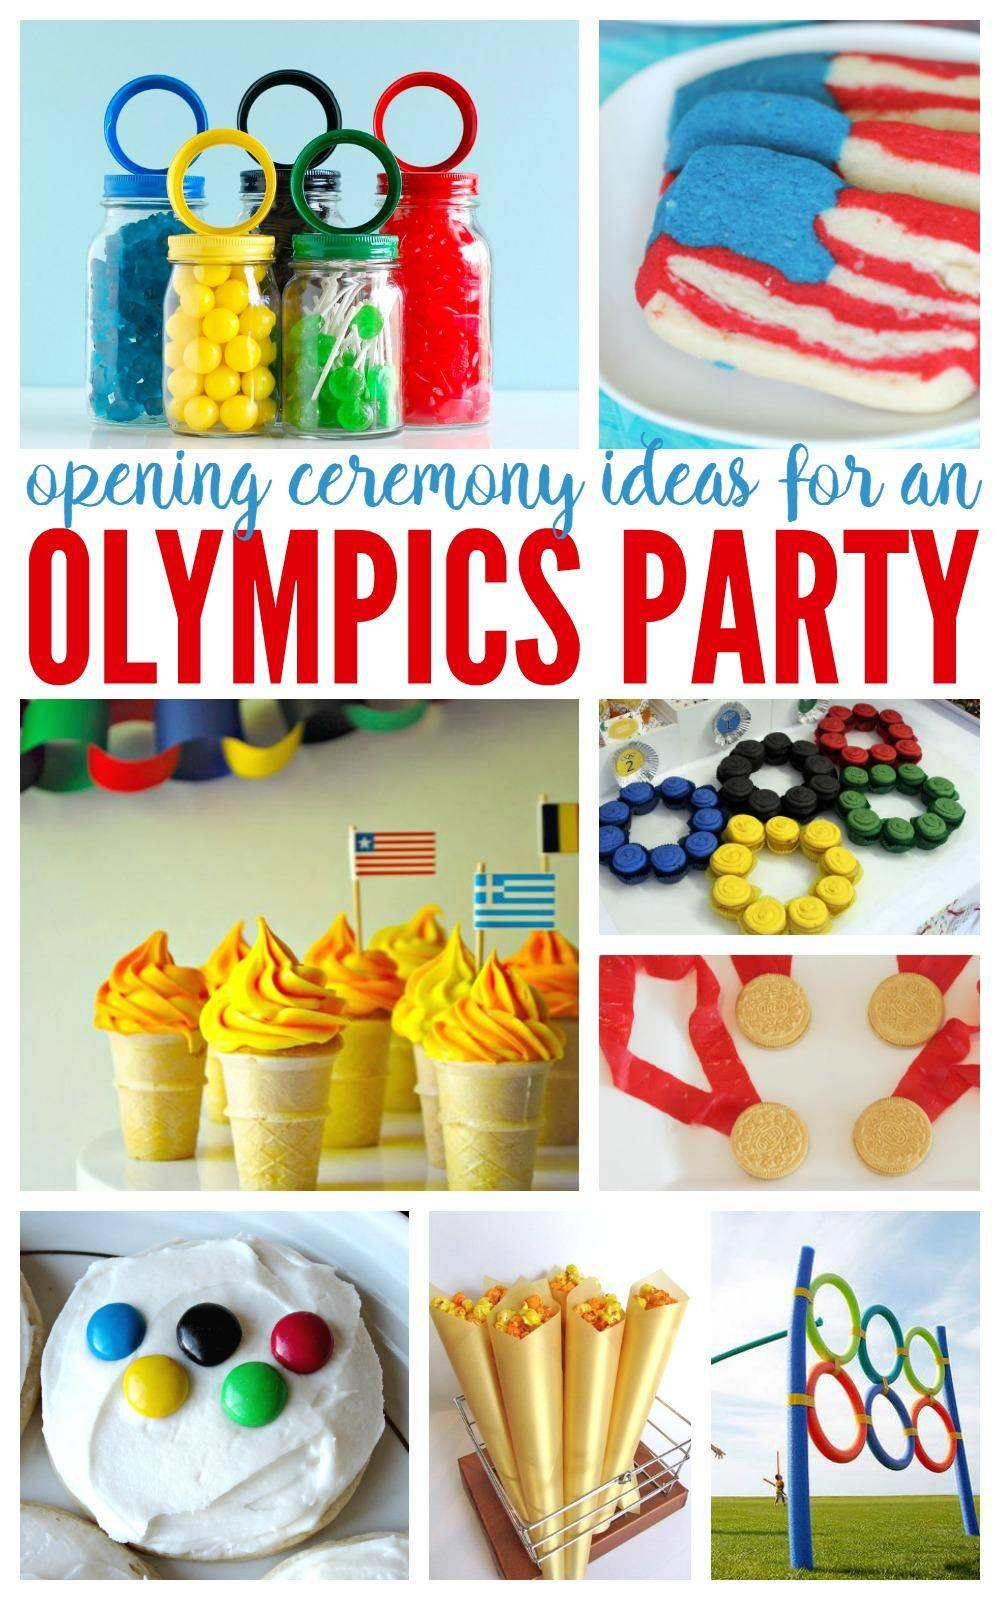 Opening Ceremony Olympic Party Ideas